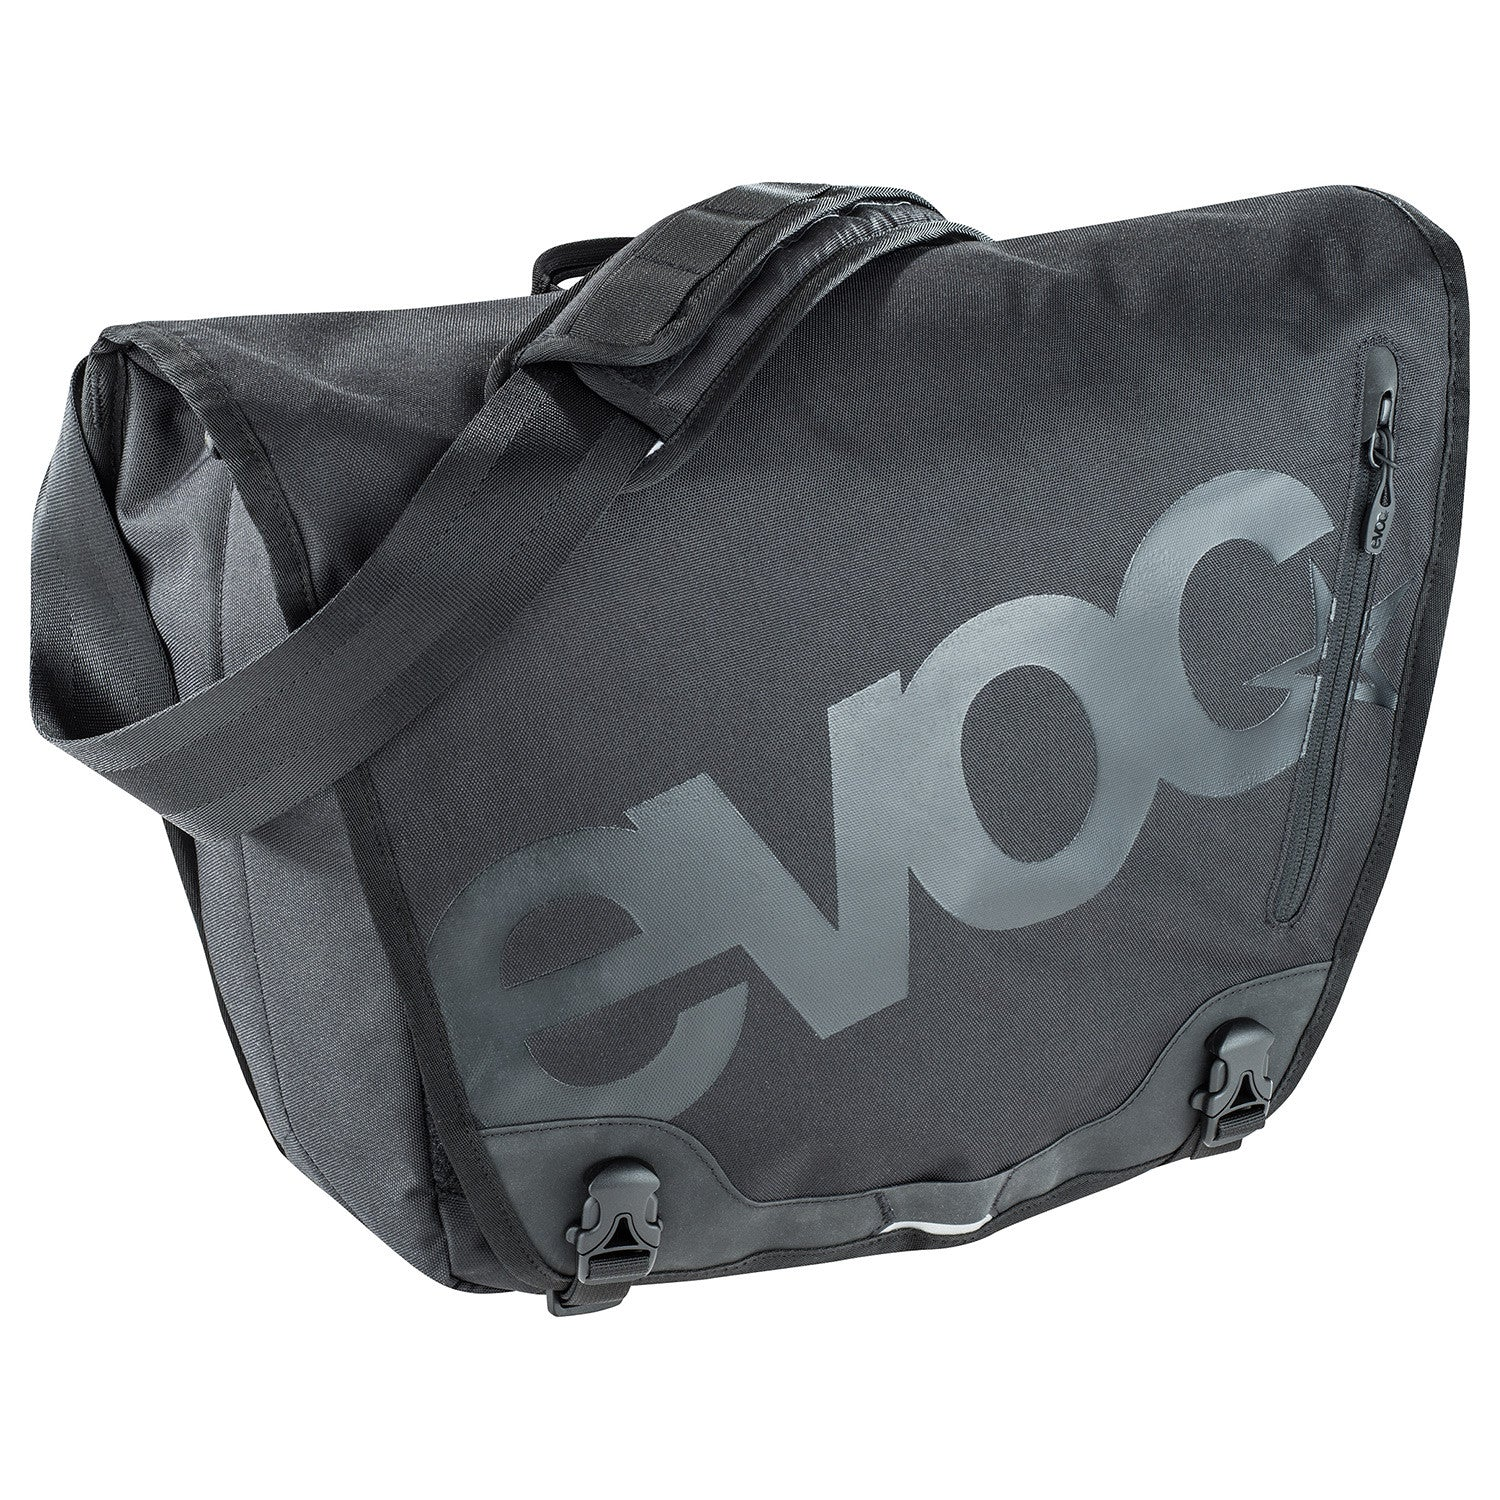 Messenger Bag 20l - Black by EVOC